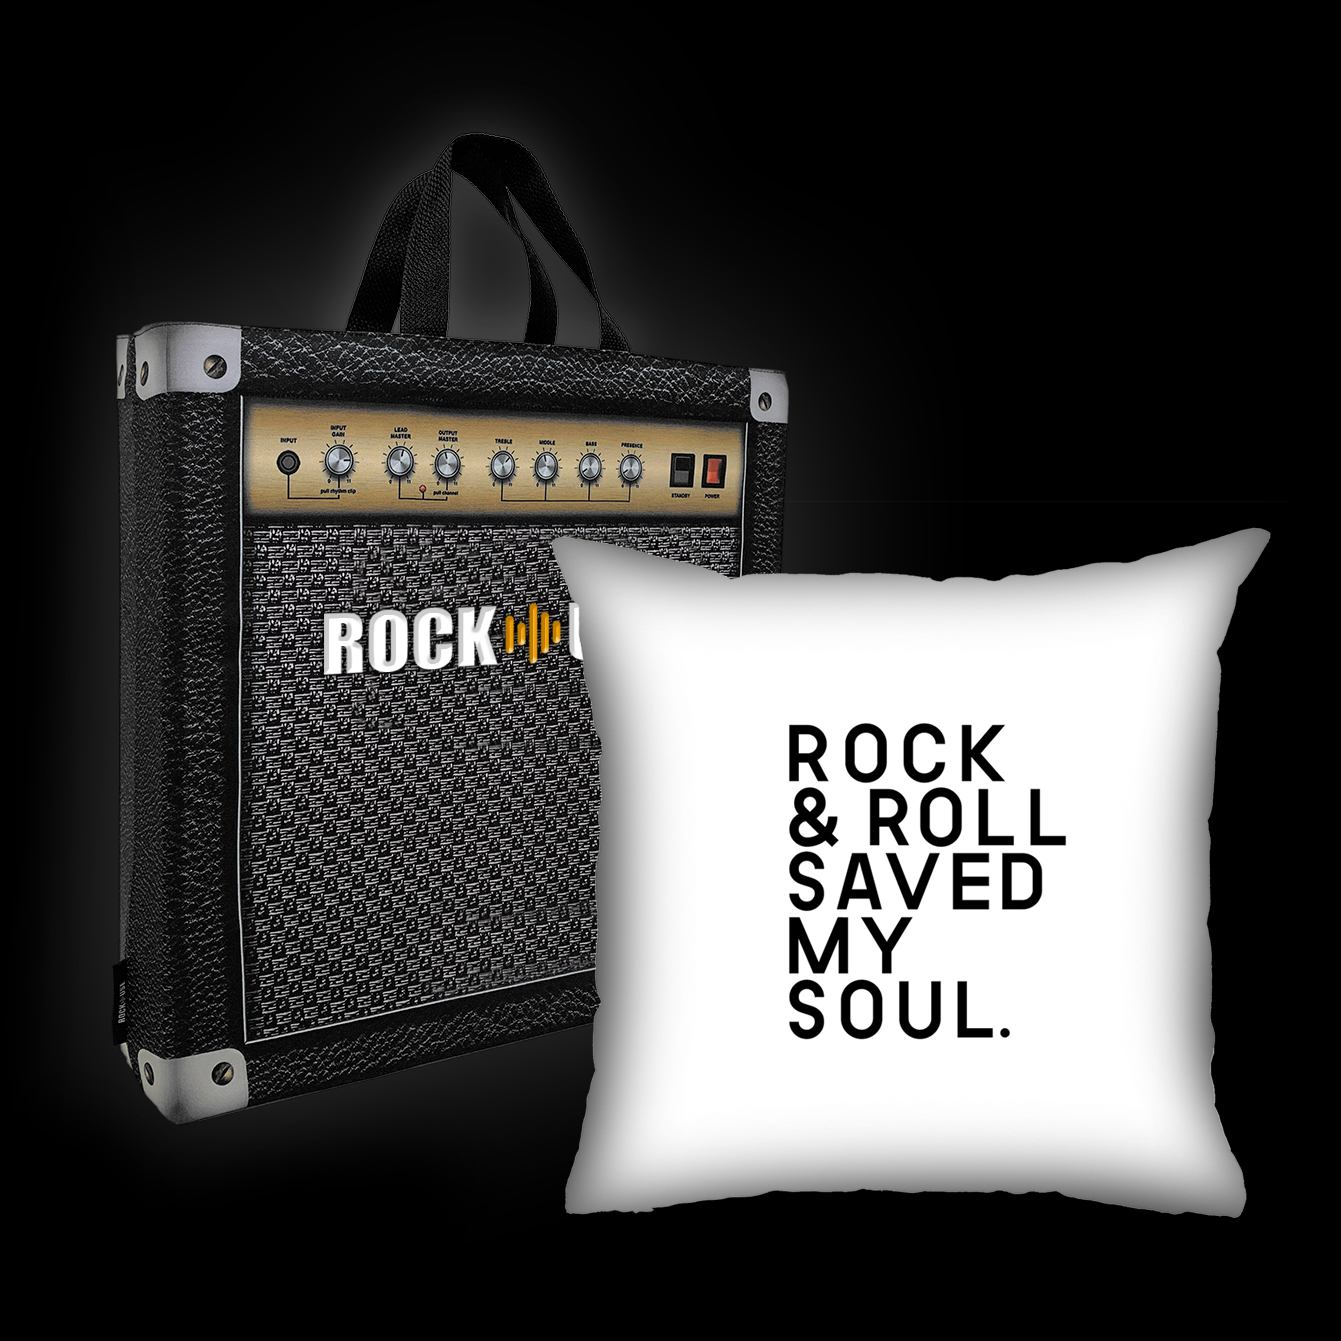 Almofada Rock Use - Rock & Roll saved my soul (Branca)